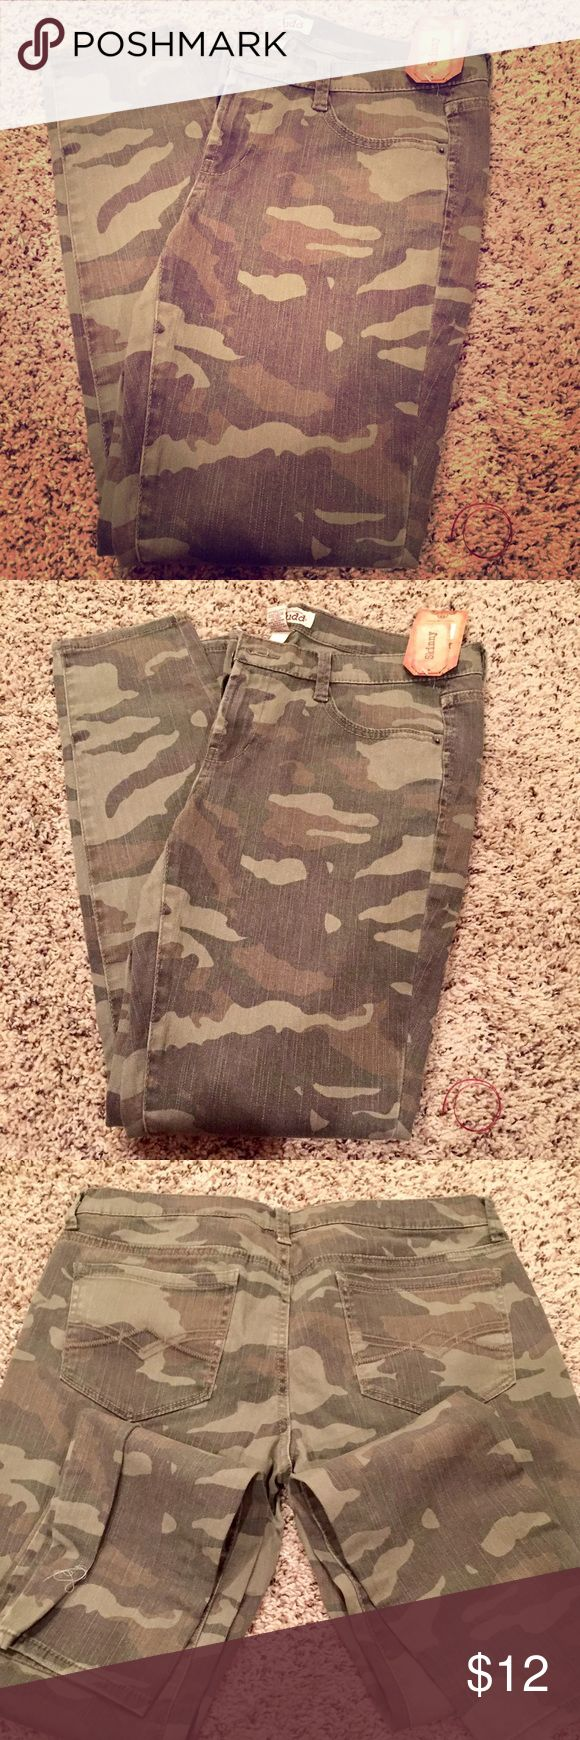 🎉🎉Camo Jeans 🎉🎉 Brand new size 13 juniors camouflage skinny jeans by MUDD. Never been worn NWT Mudd Jeans Skinny